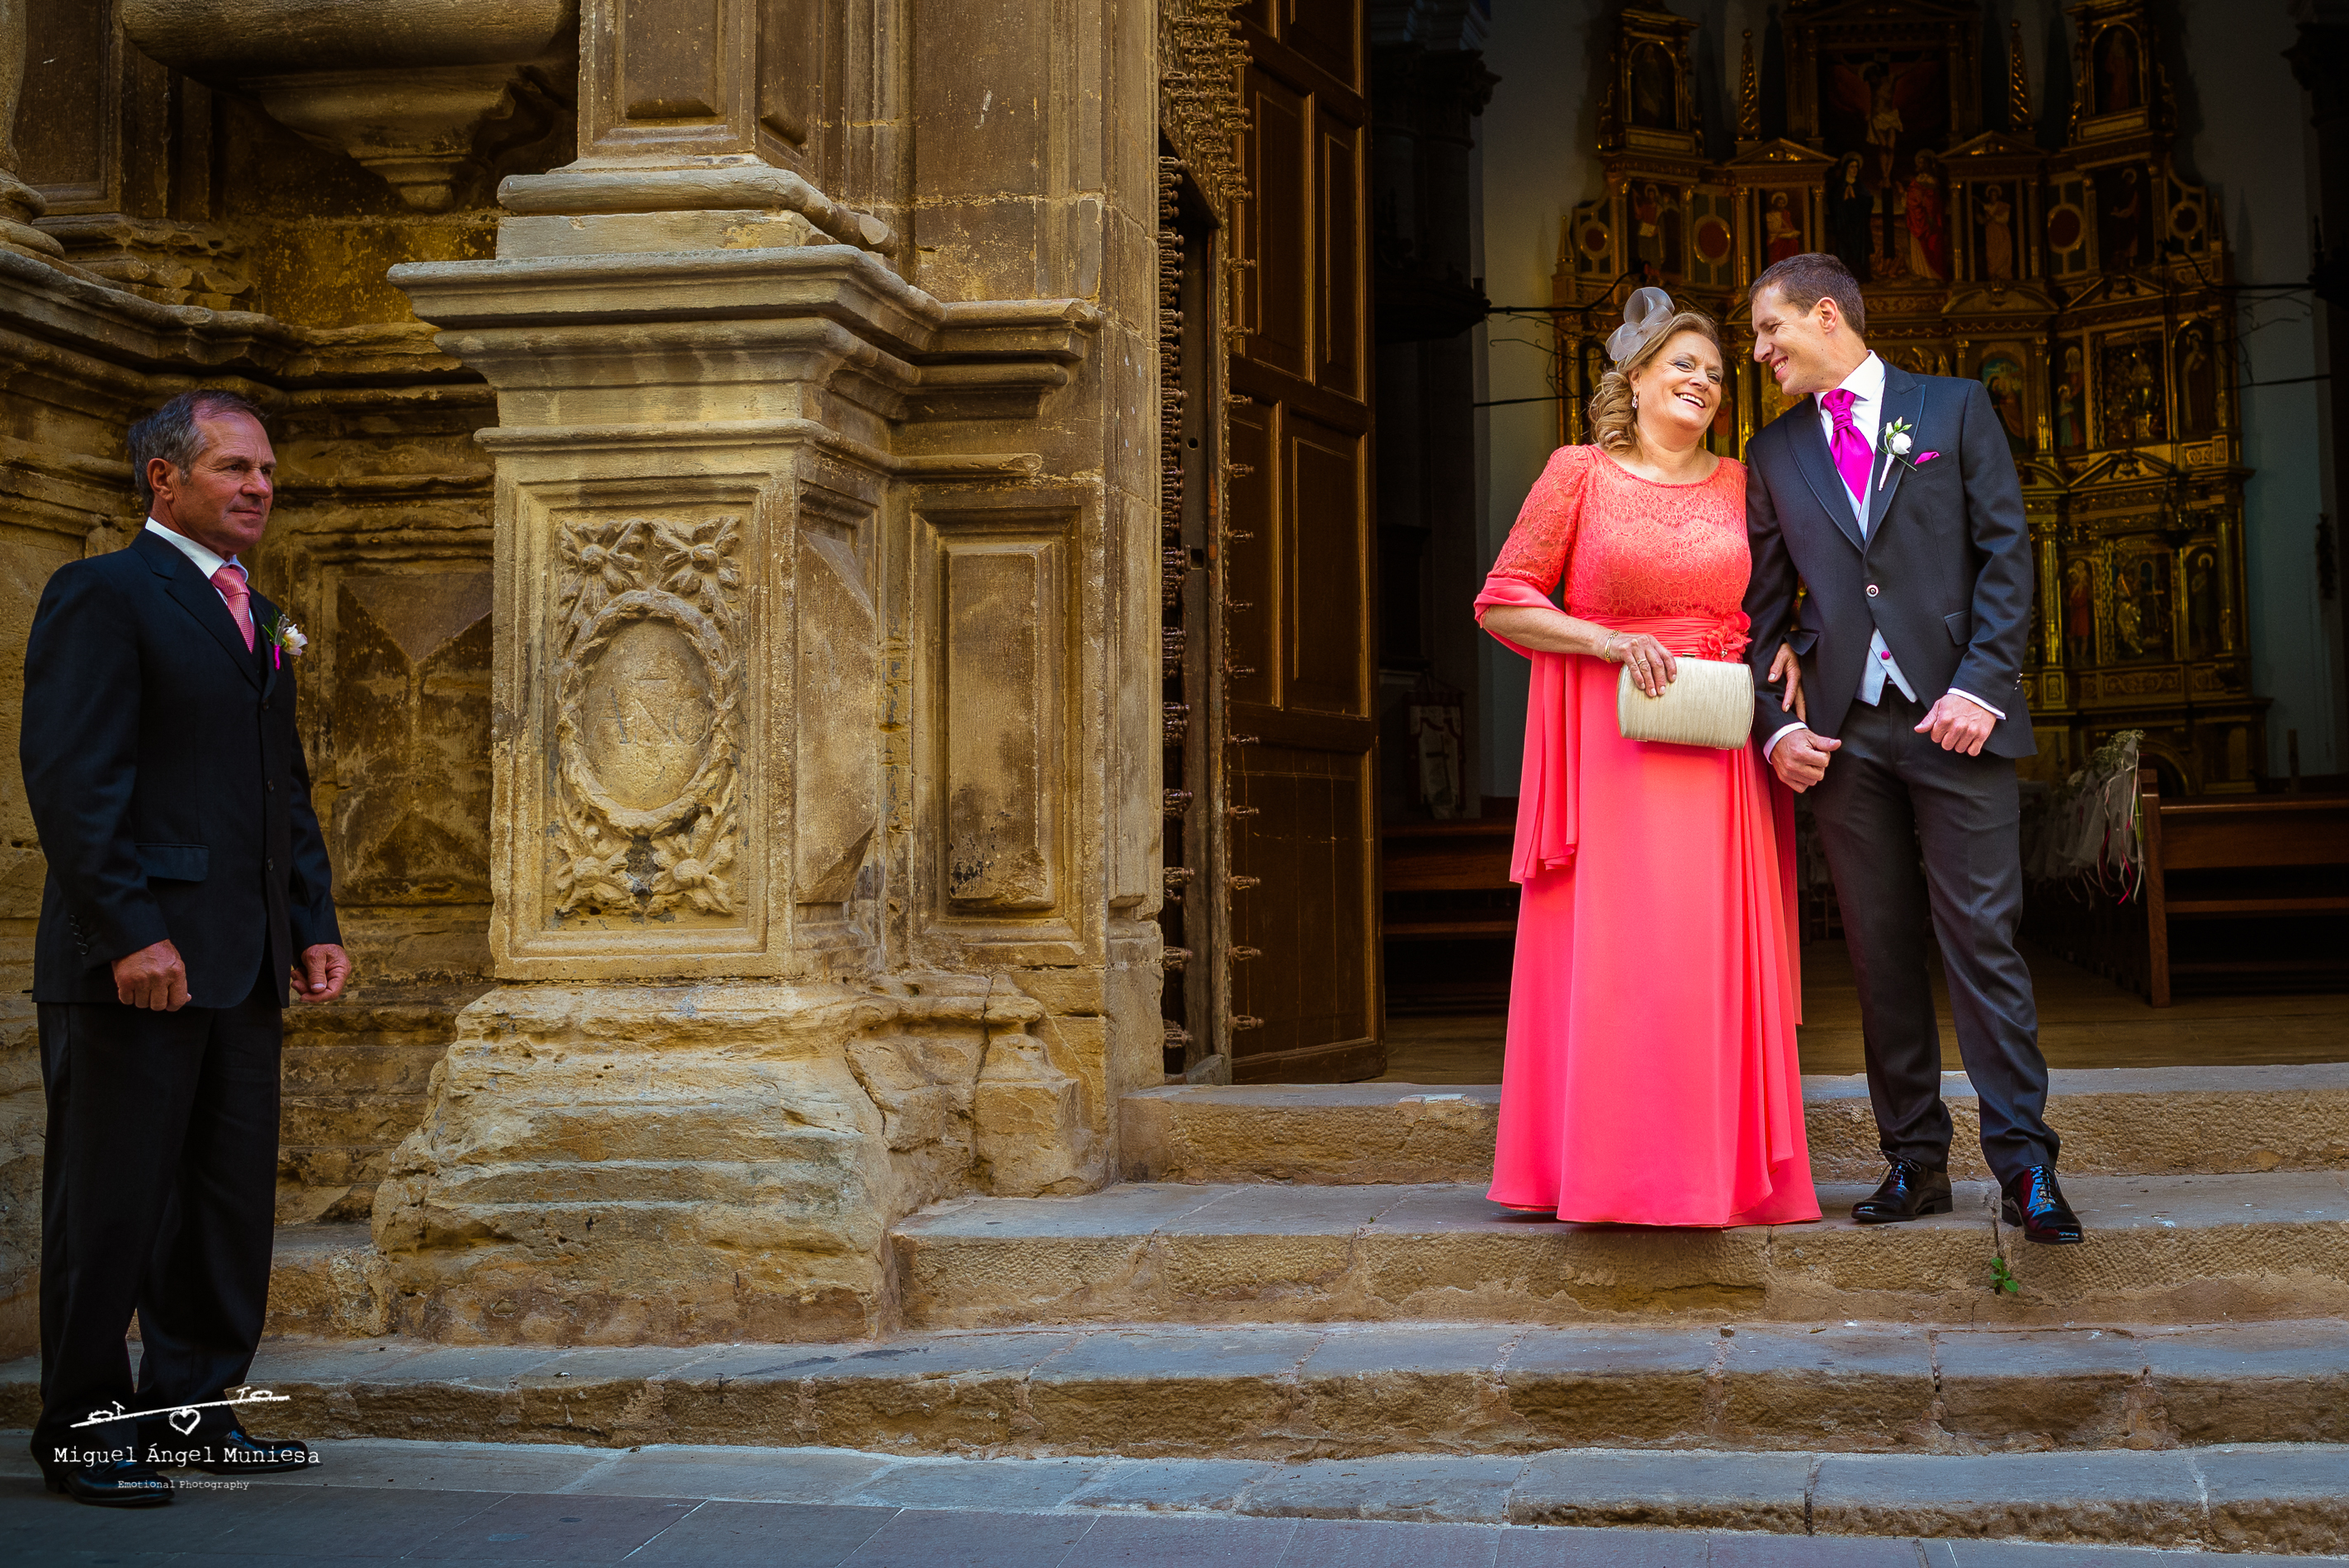 miguel-angel-muniesa-miguel-angel-muniesa_emotional-photography-fotografia-de-boda-10